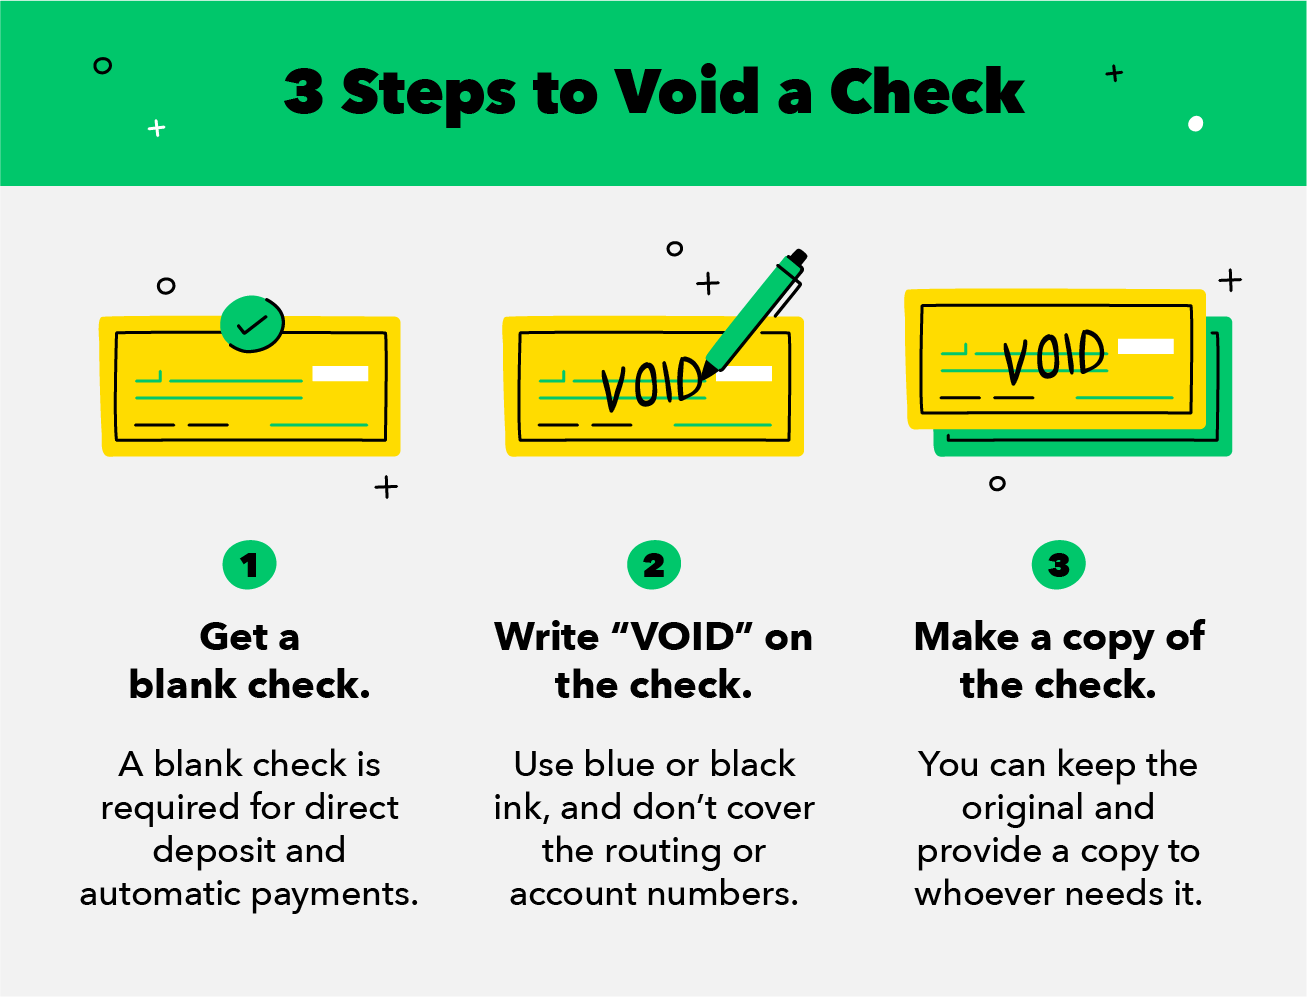 3-steps-to-void-a-check